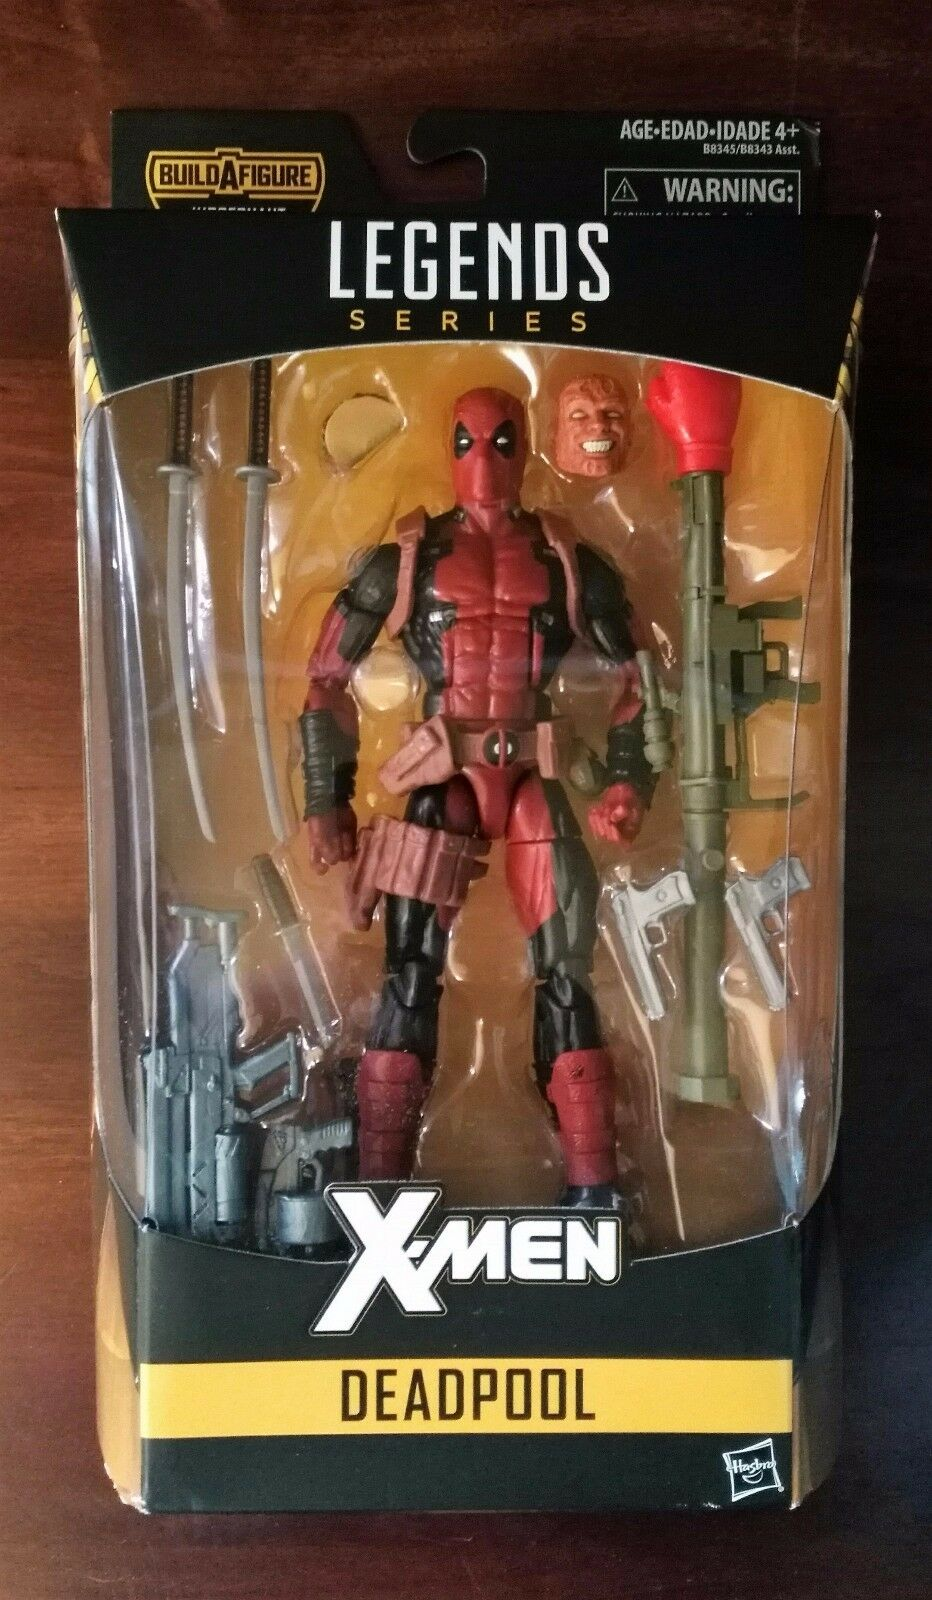 Hasbro marvel legends series baf fr deadpool action - figur - vhtf (selten)